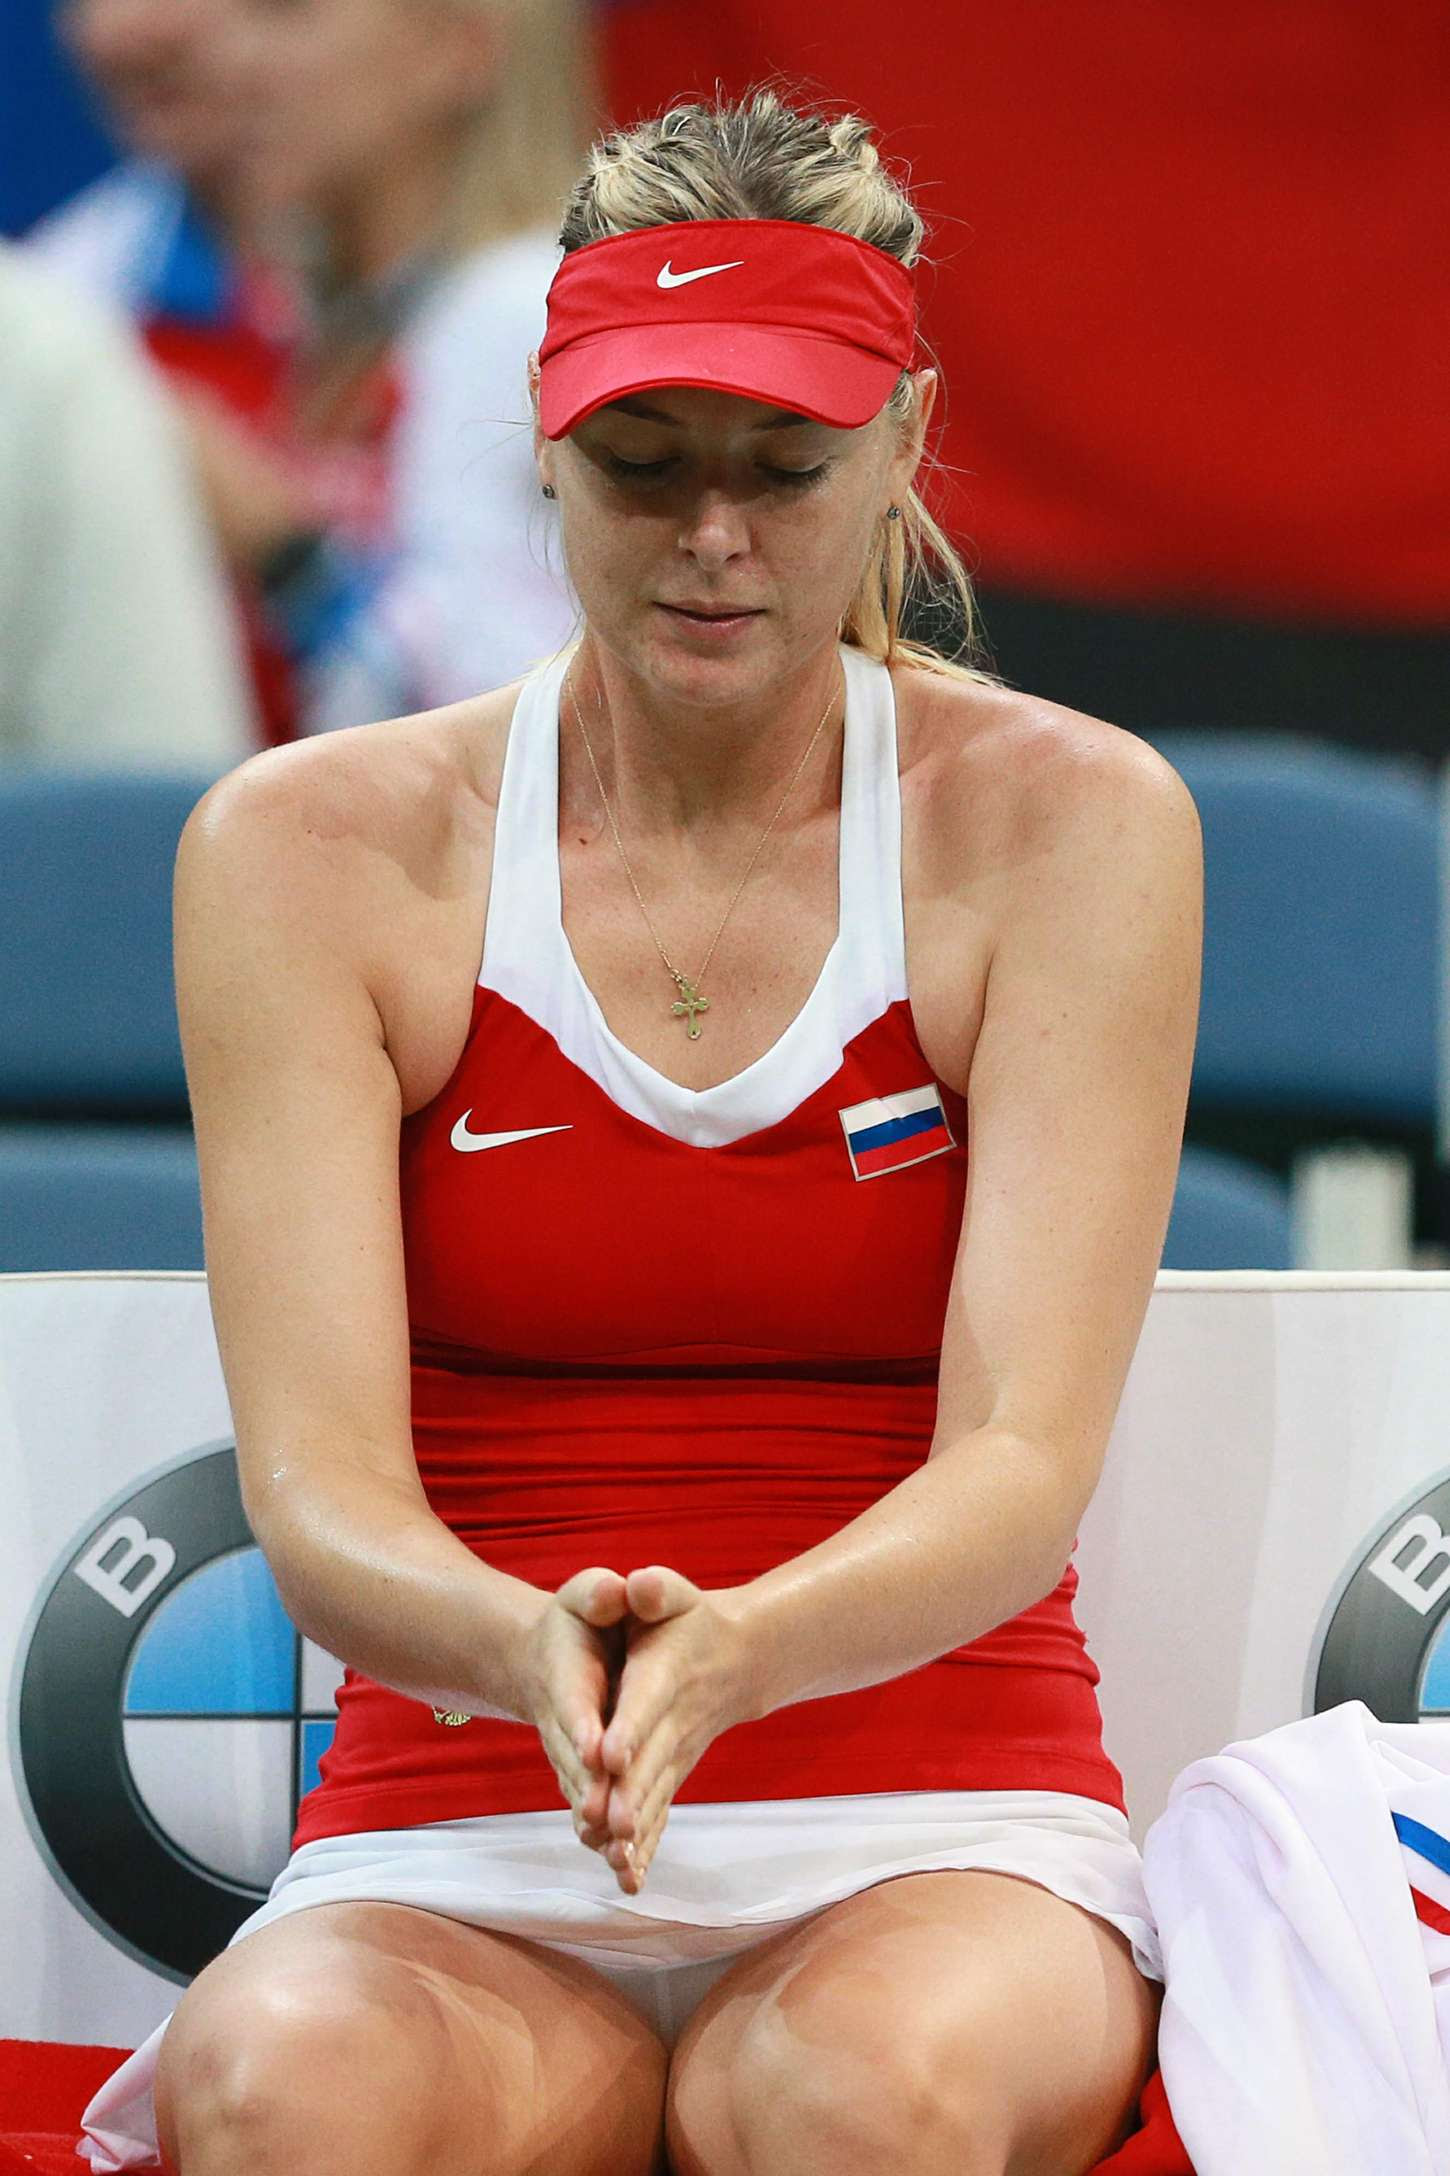 Maria Sharapova at the Fed Cup Czech Republic vs Russia in Prague